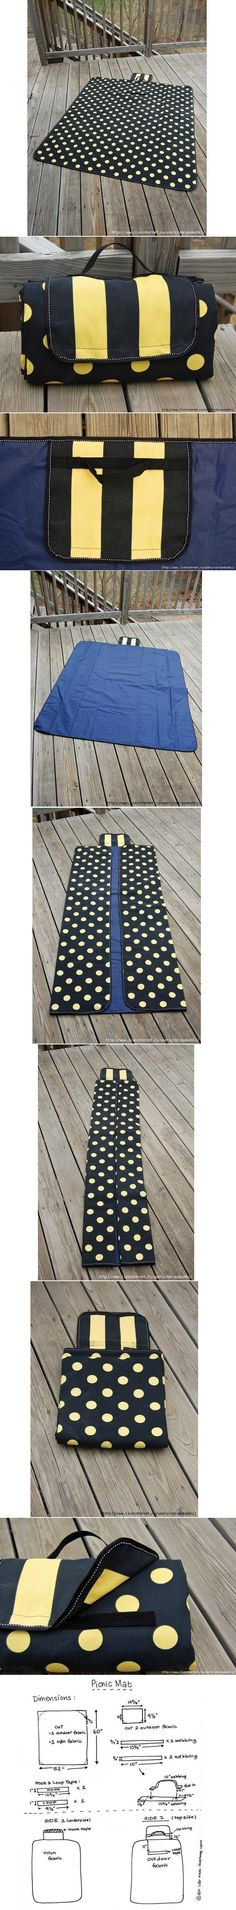 DIY Picnic Mat DIY Picnic Mat. Maybe my mom can make for me since I don't sew.